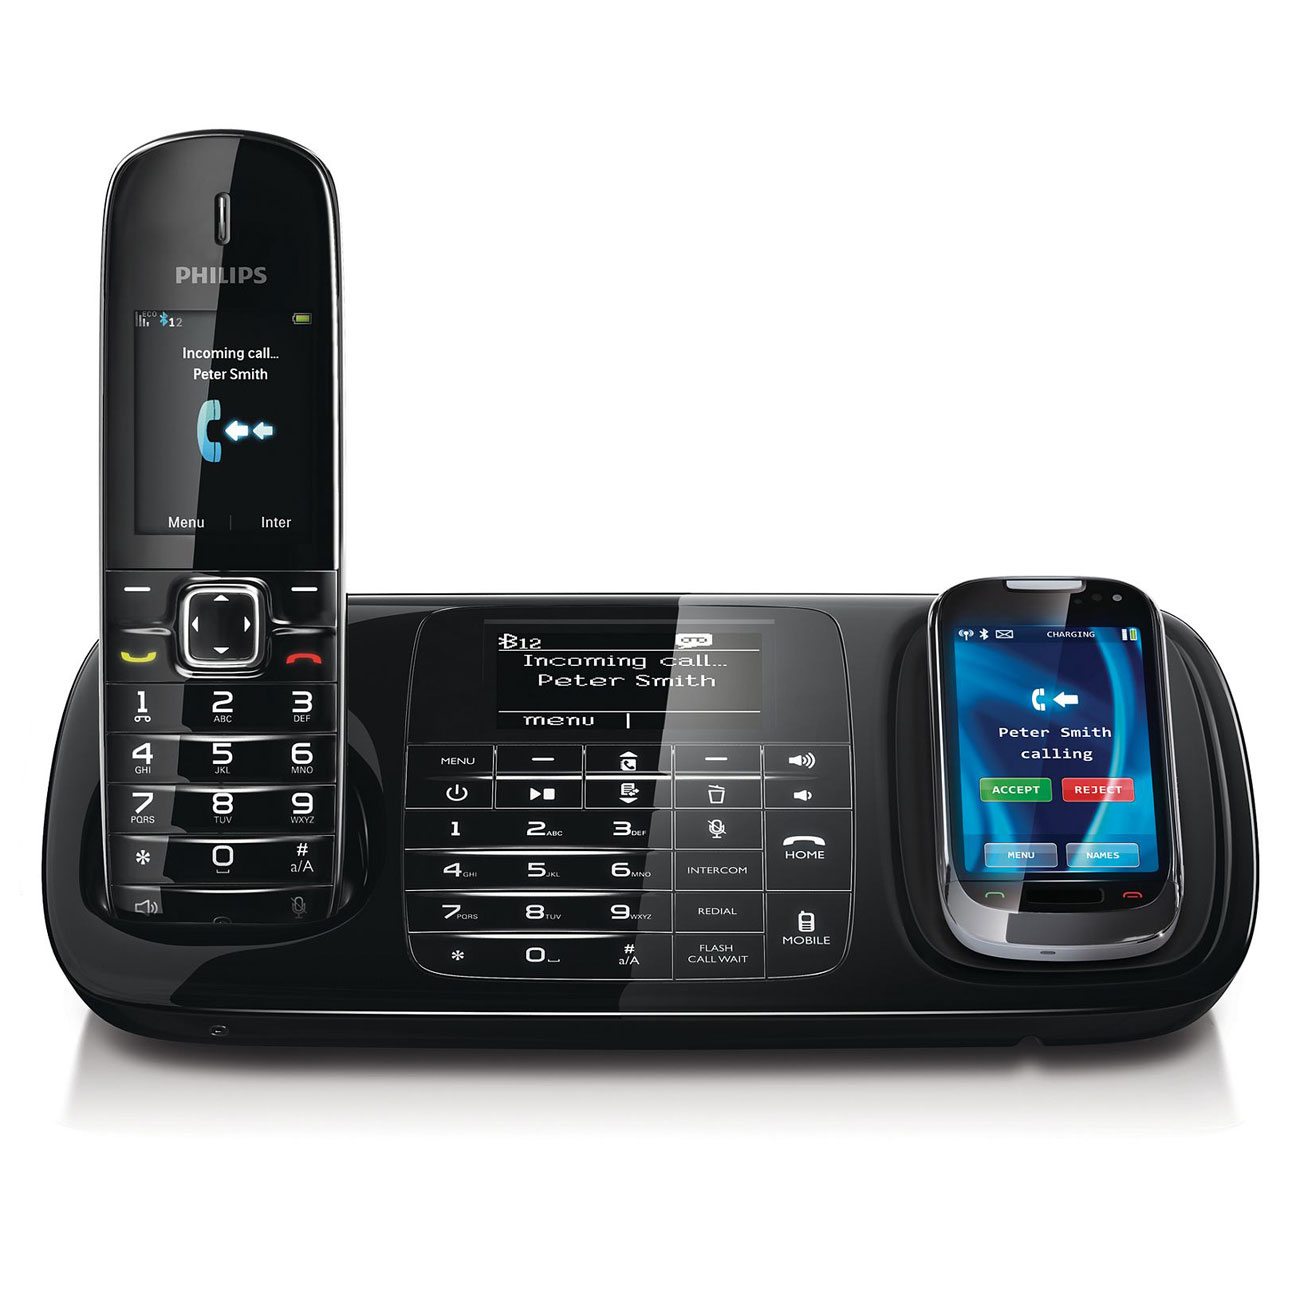 philips se8881b noir t l phone sans fil philips sur. Black Bedroom Furniture Sets. Home Design Ideas